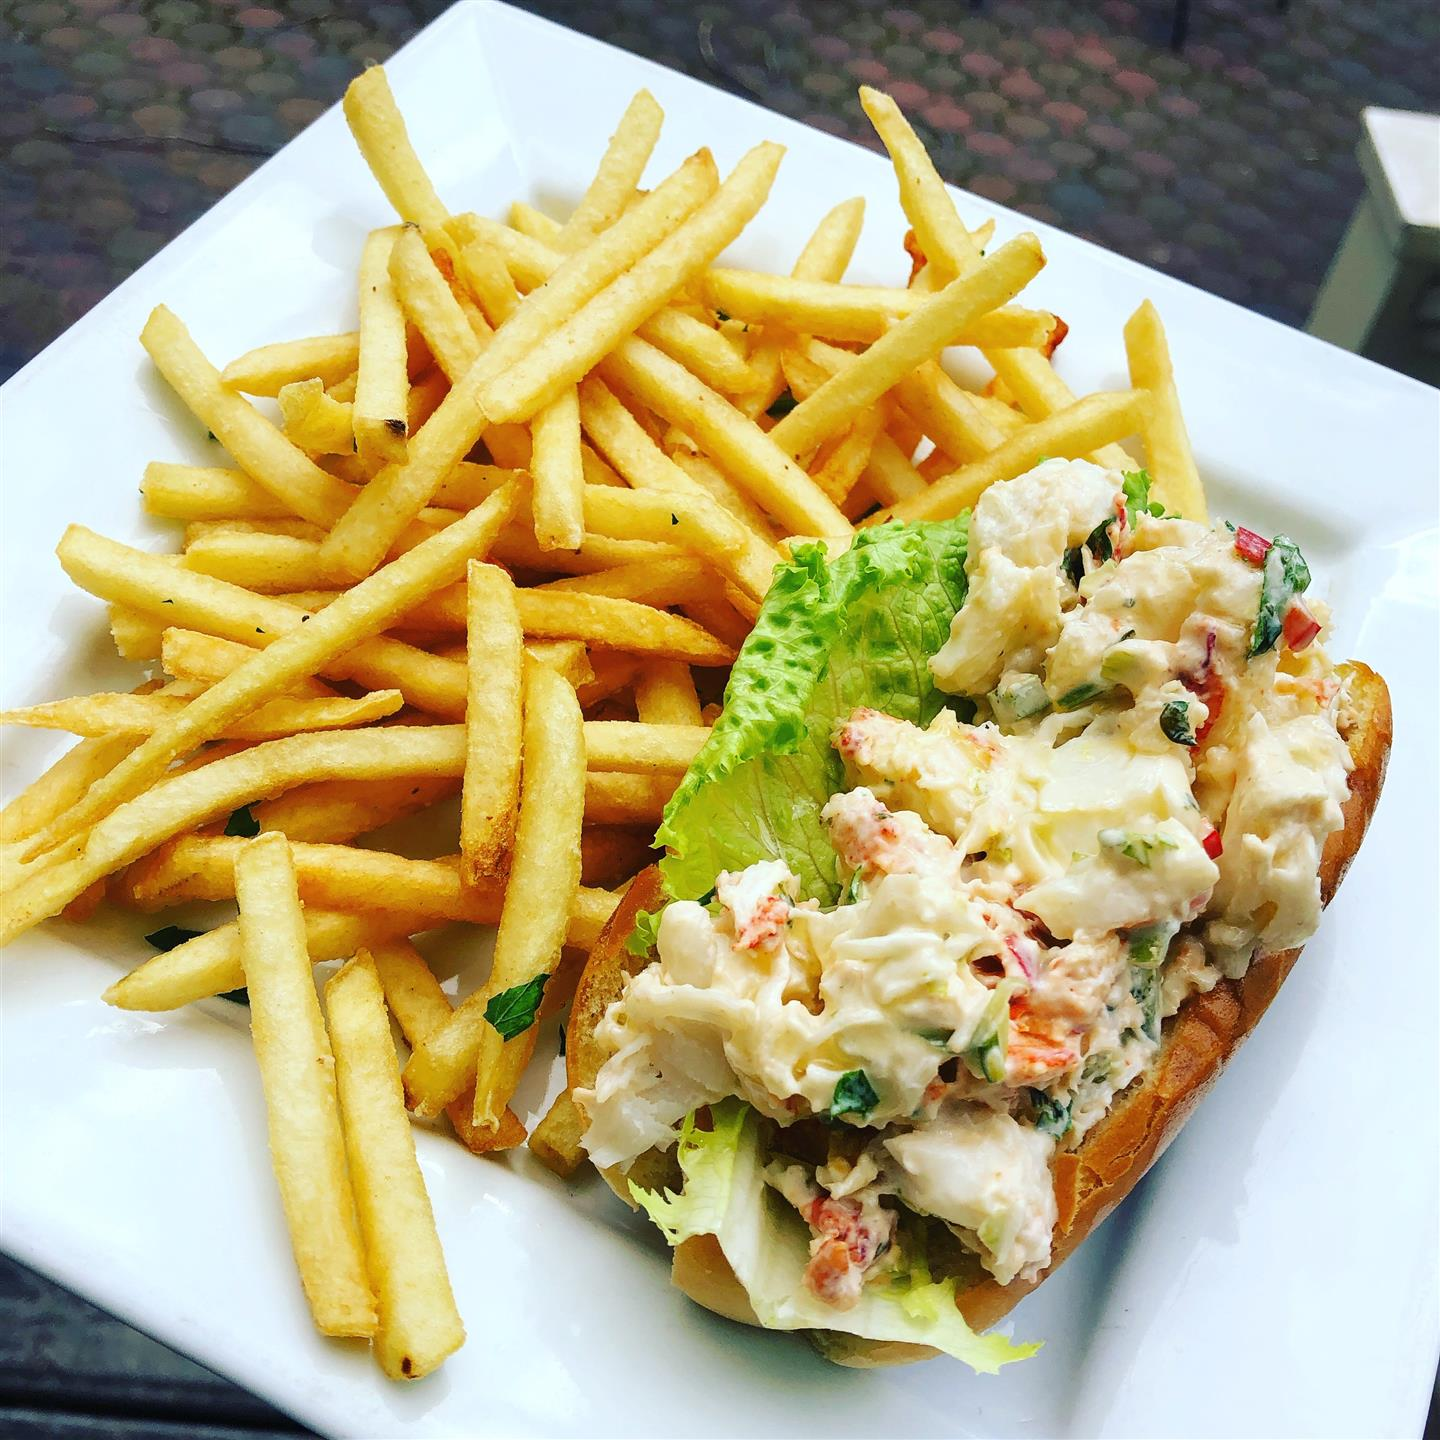 lobster roll on a toasted bun with a side of french fries